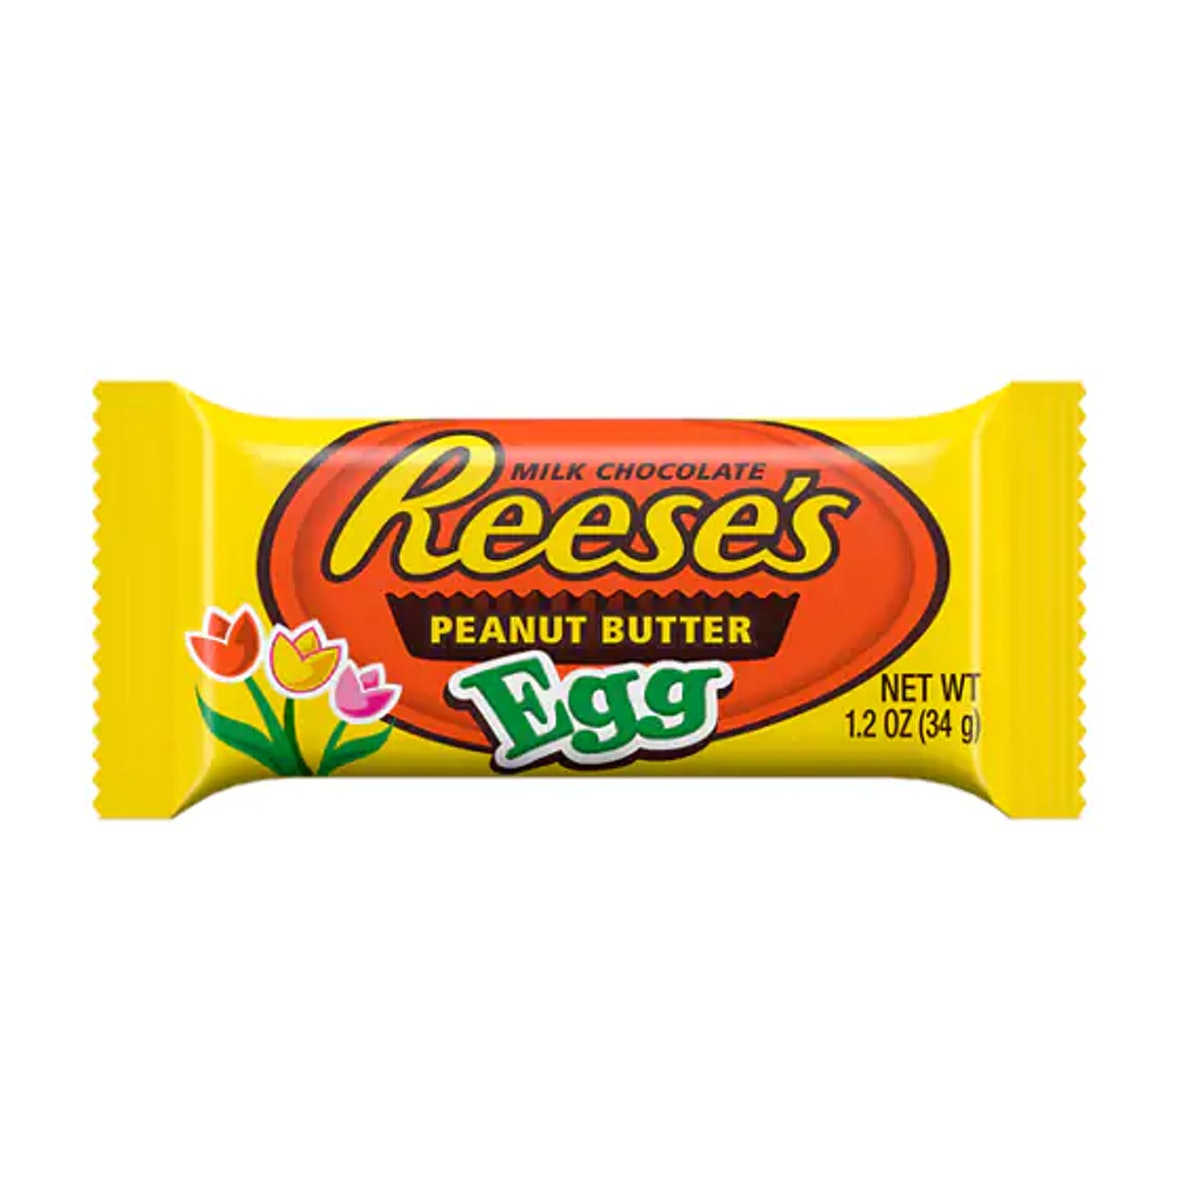 Here's what to know about if Reese's Eggs are gluten free.